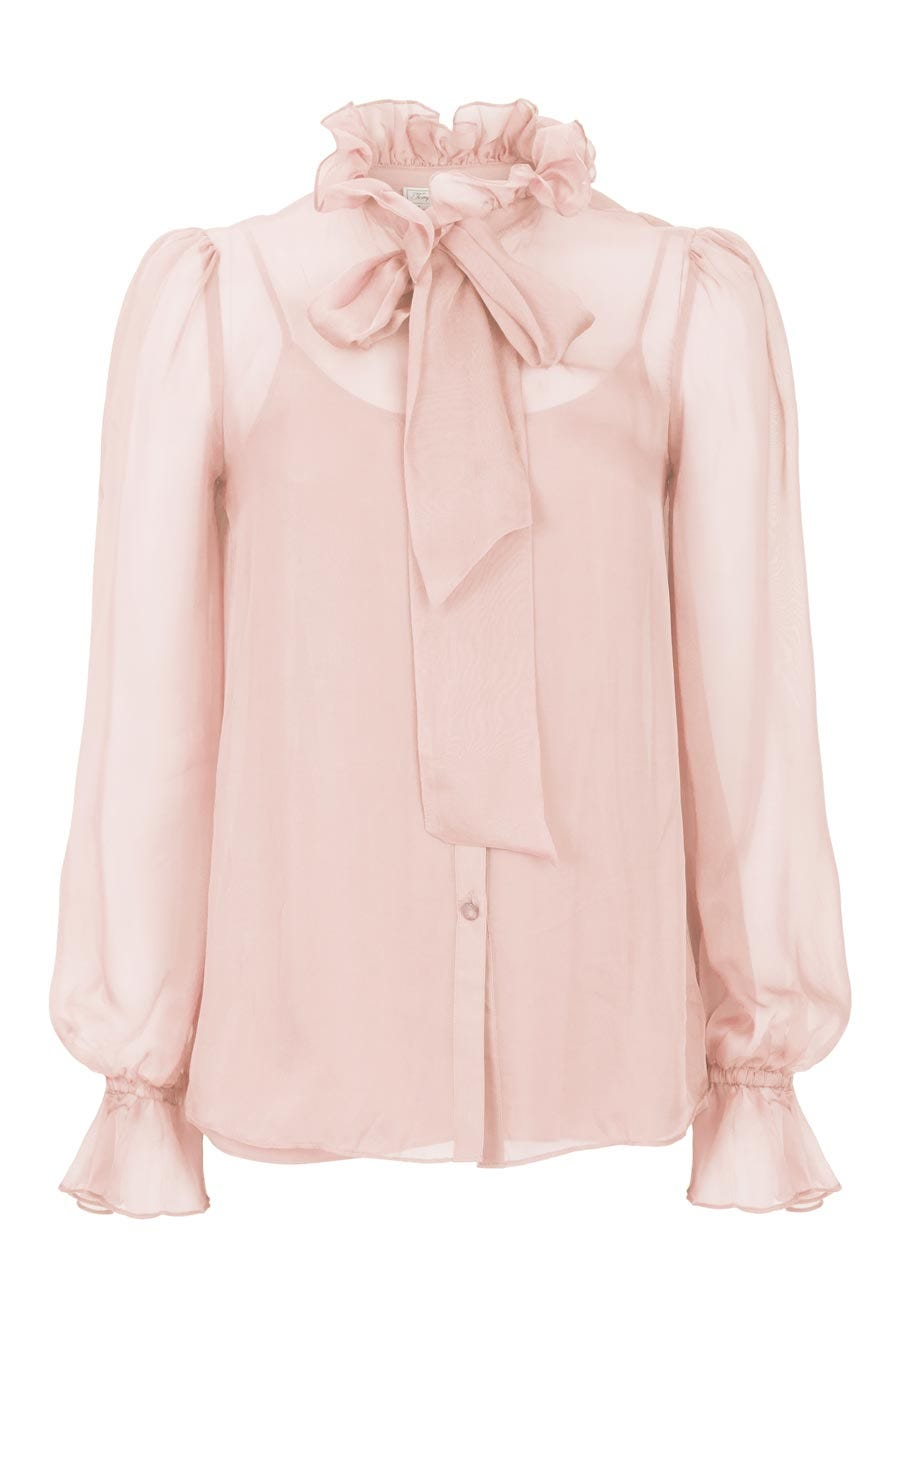 Costume Silk Shirt, Rose Quartz